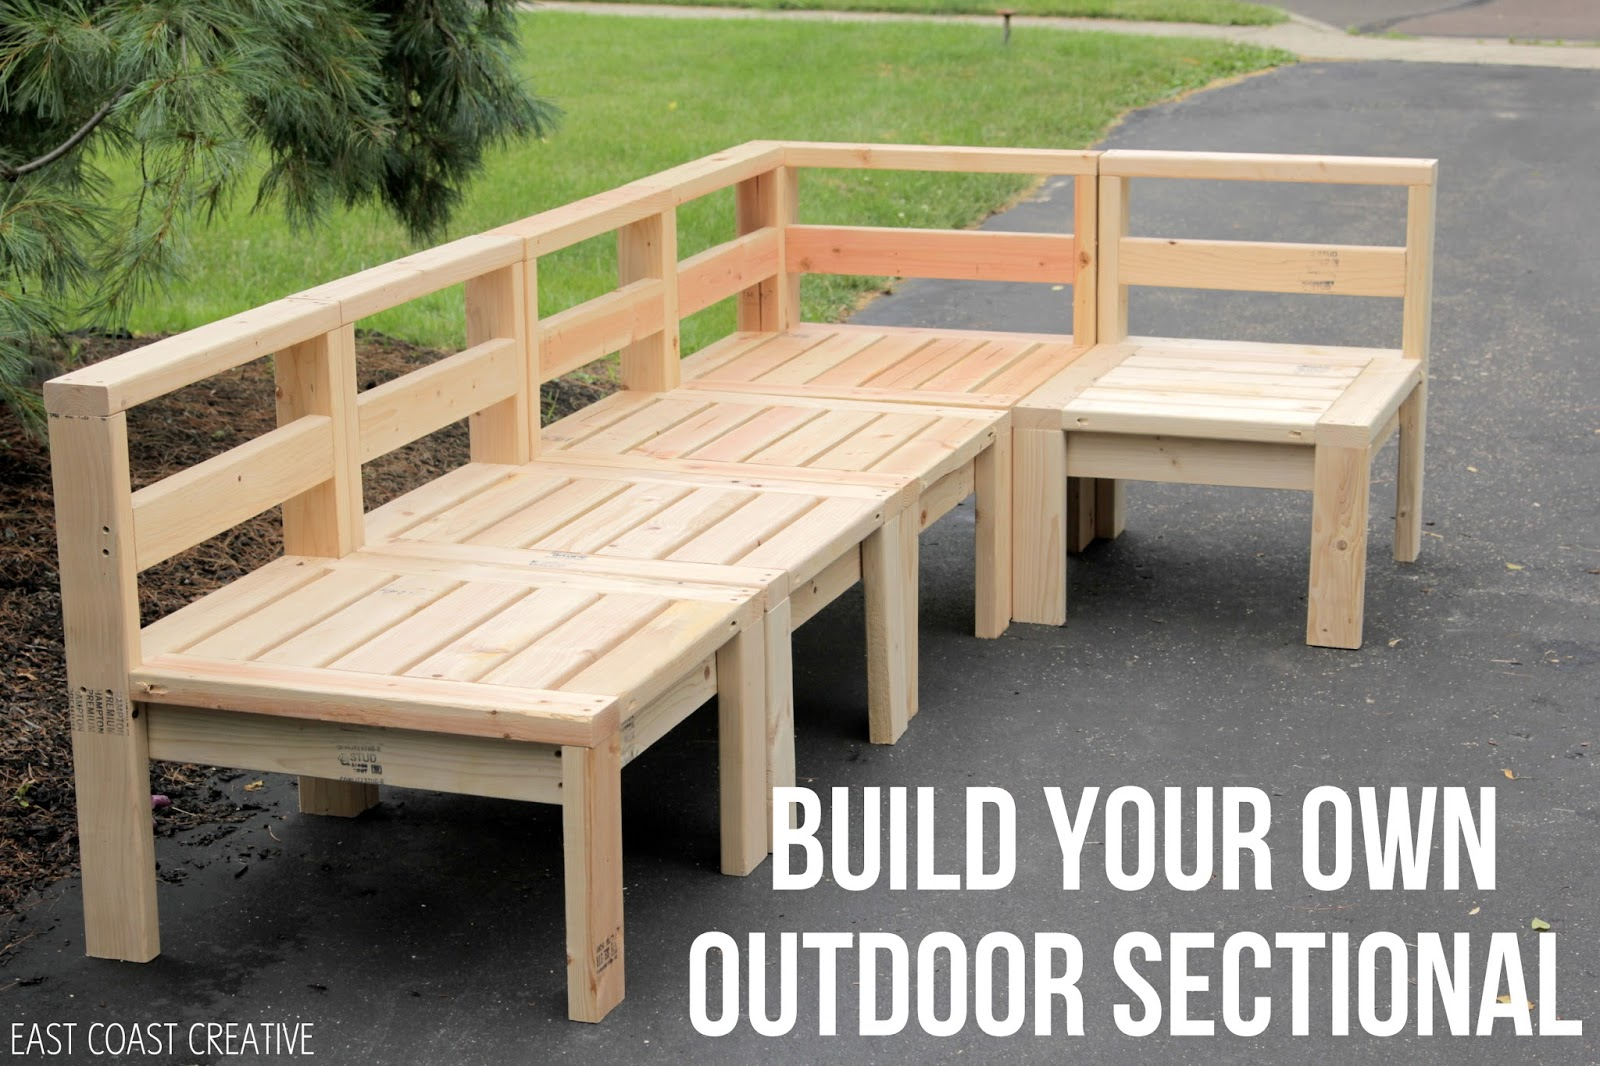 Building Your Own Patio how to build an outdoor sectional {knock it off} - east coast